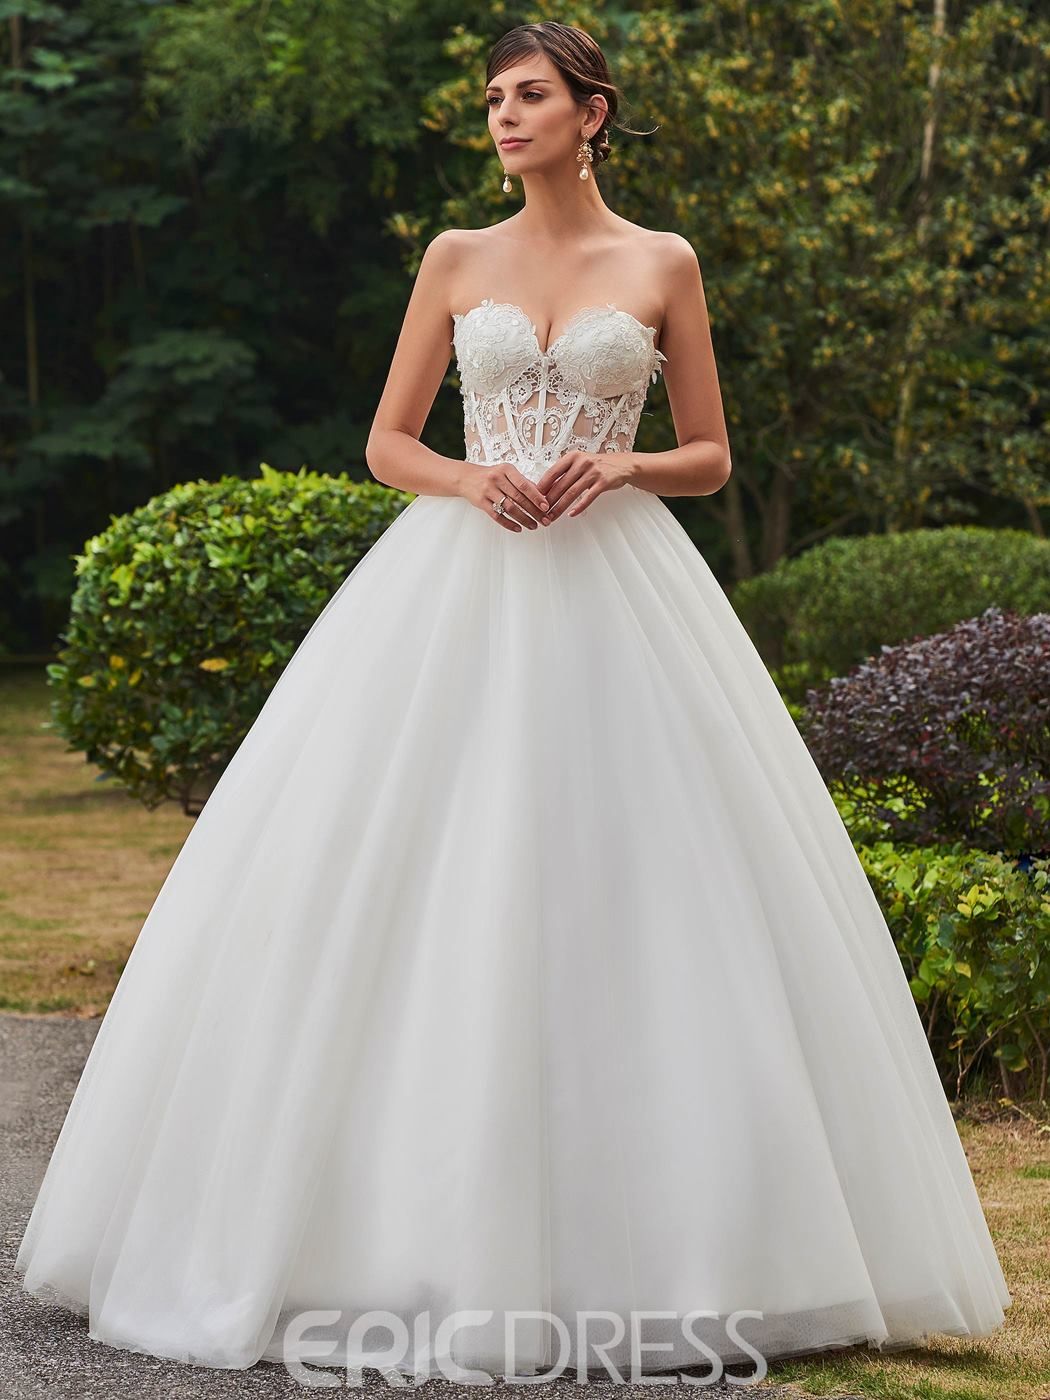 Ericdress Sexy Sweetheart Appliques Ball Gown Wedding Dress